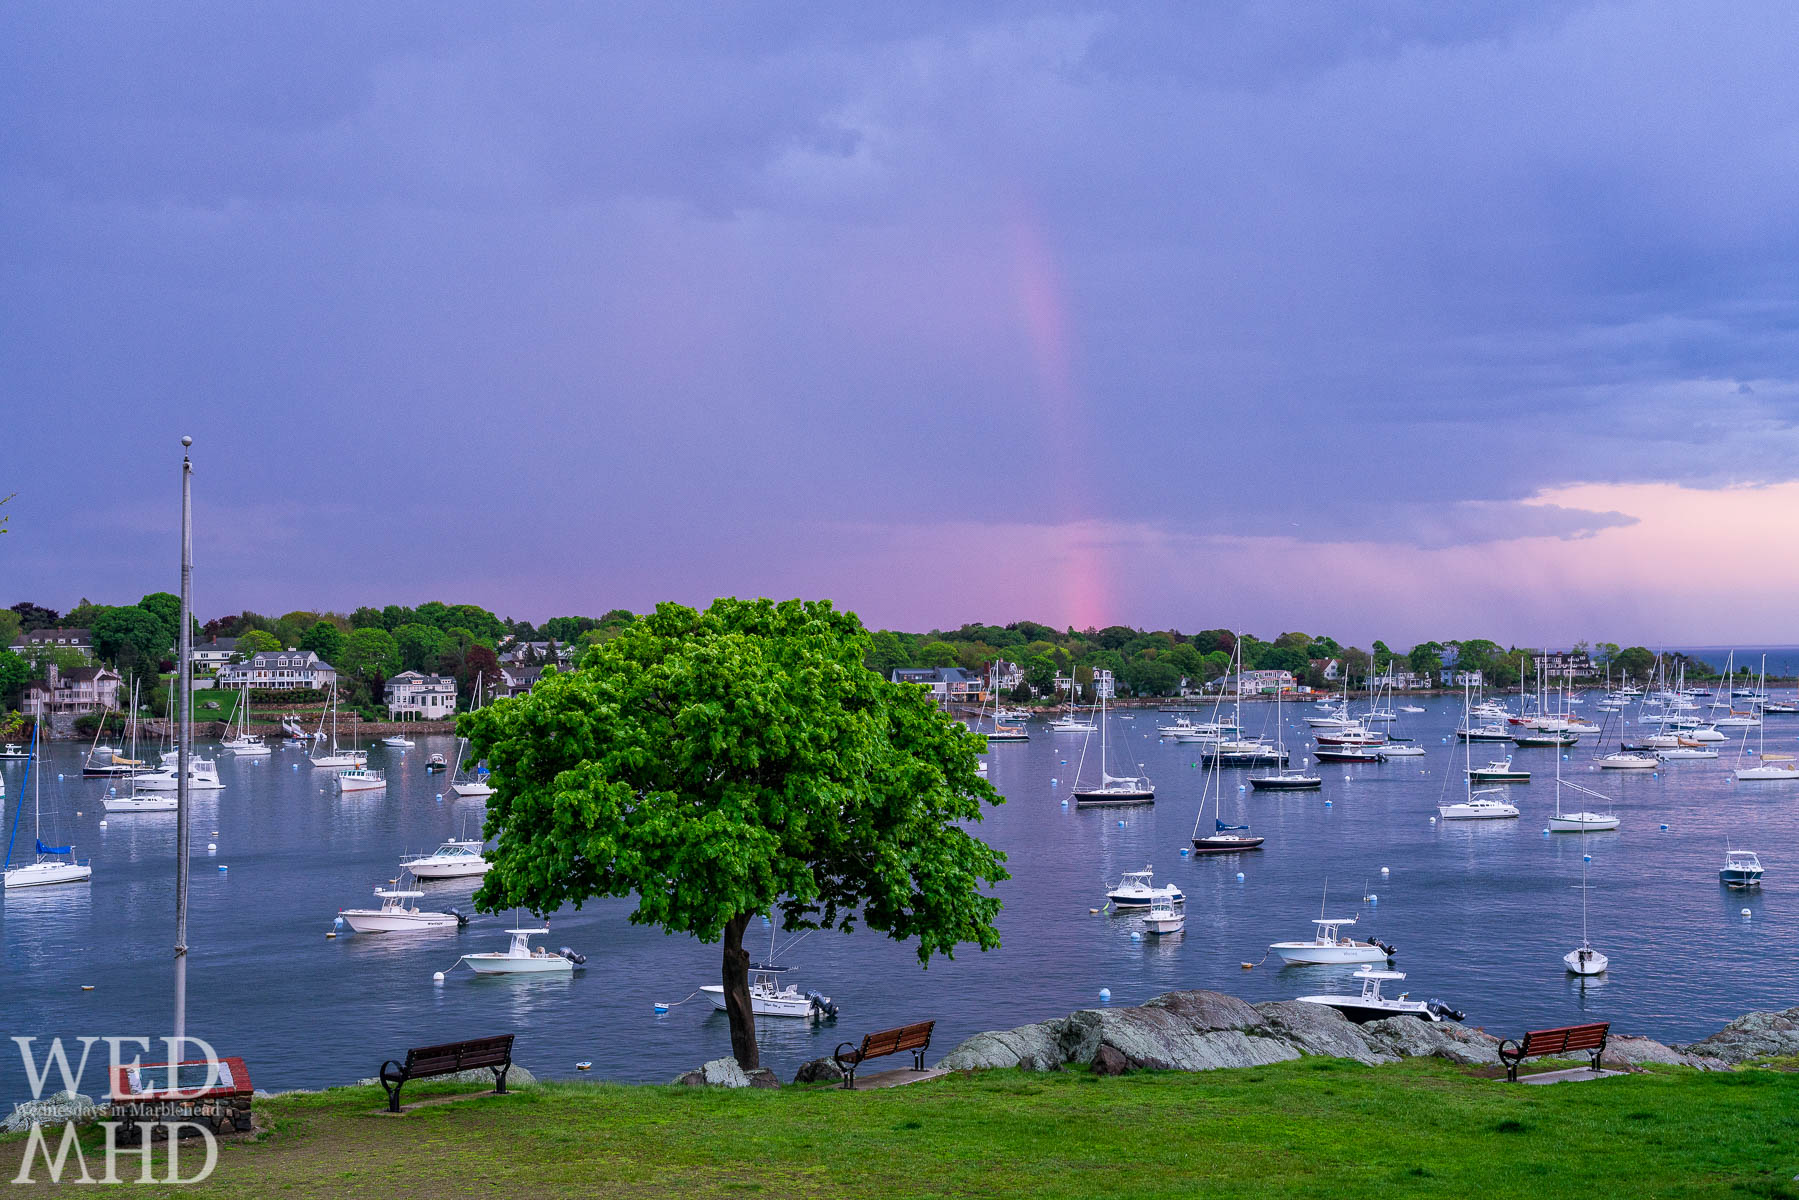 View from Crocker Park at a calm harbor and a rainbow after the storm passes